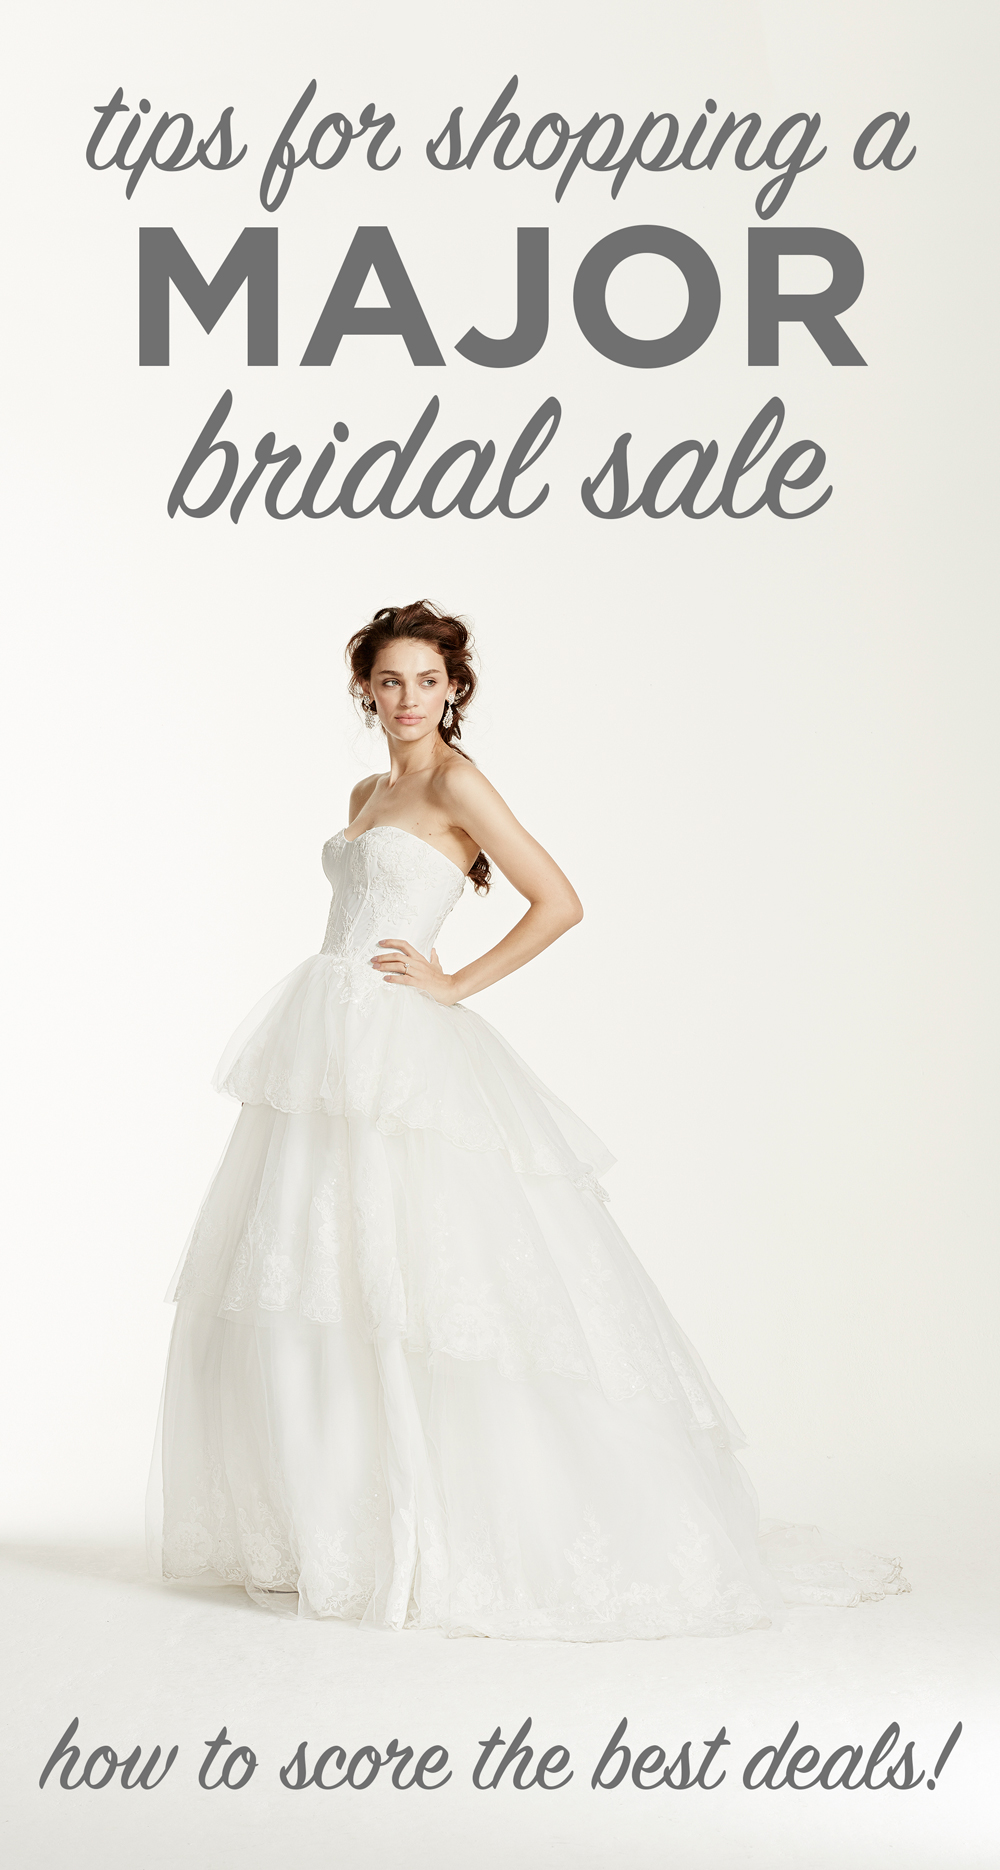 Tips for Shopping a Major Bridal Sale